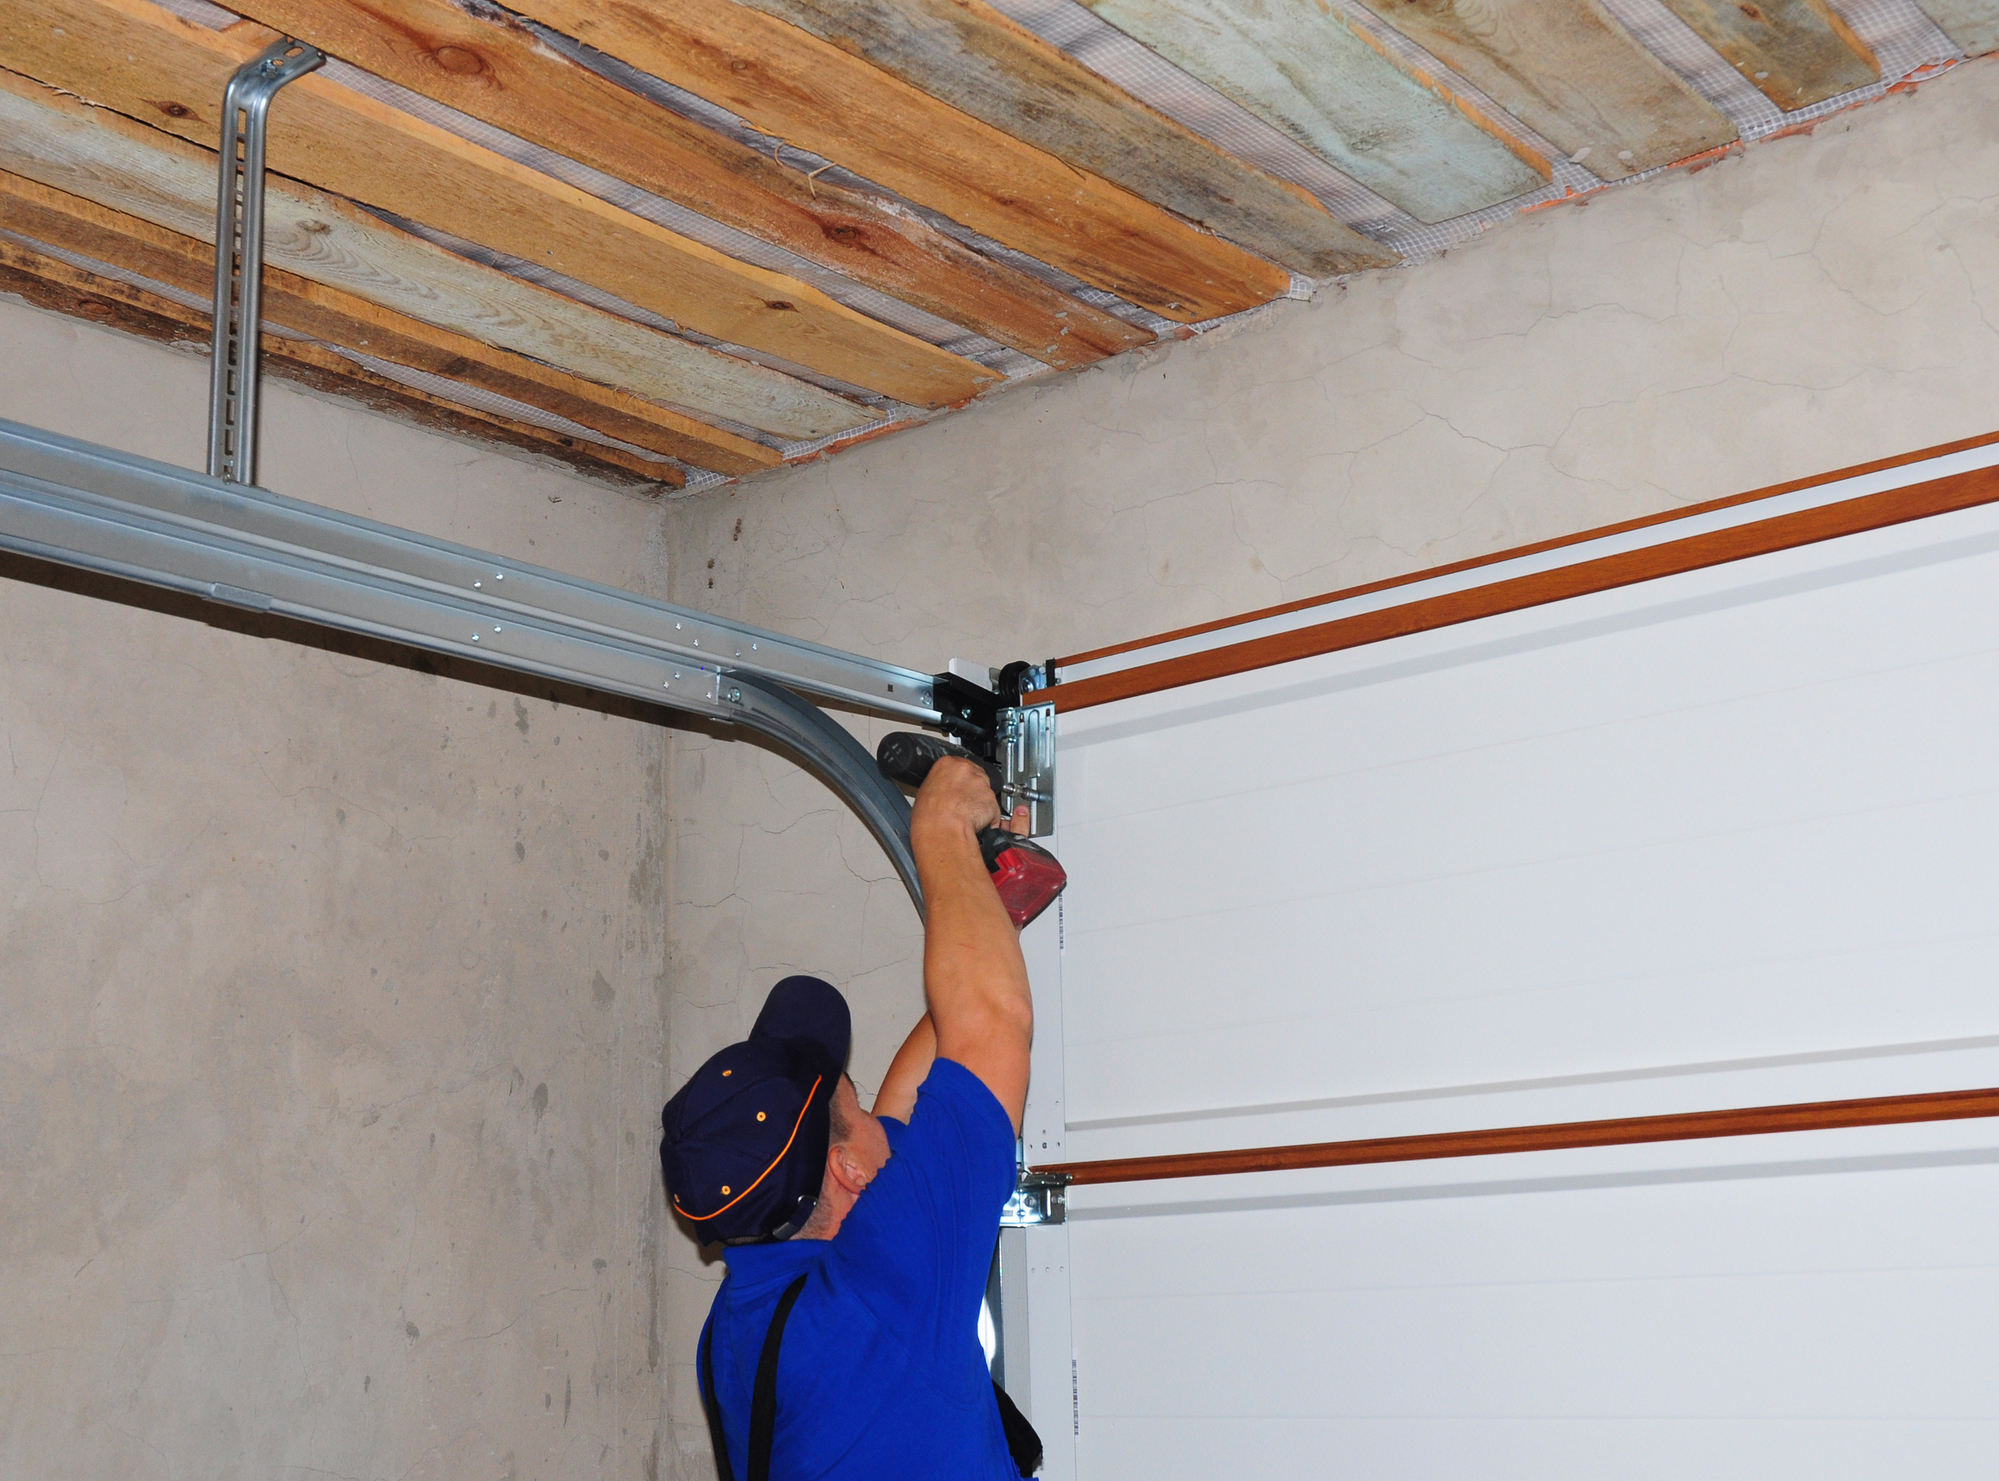 Garage door repair services being performed in Lees Summit, MO